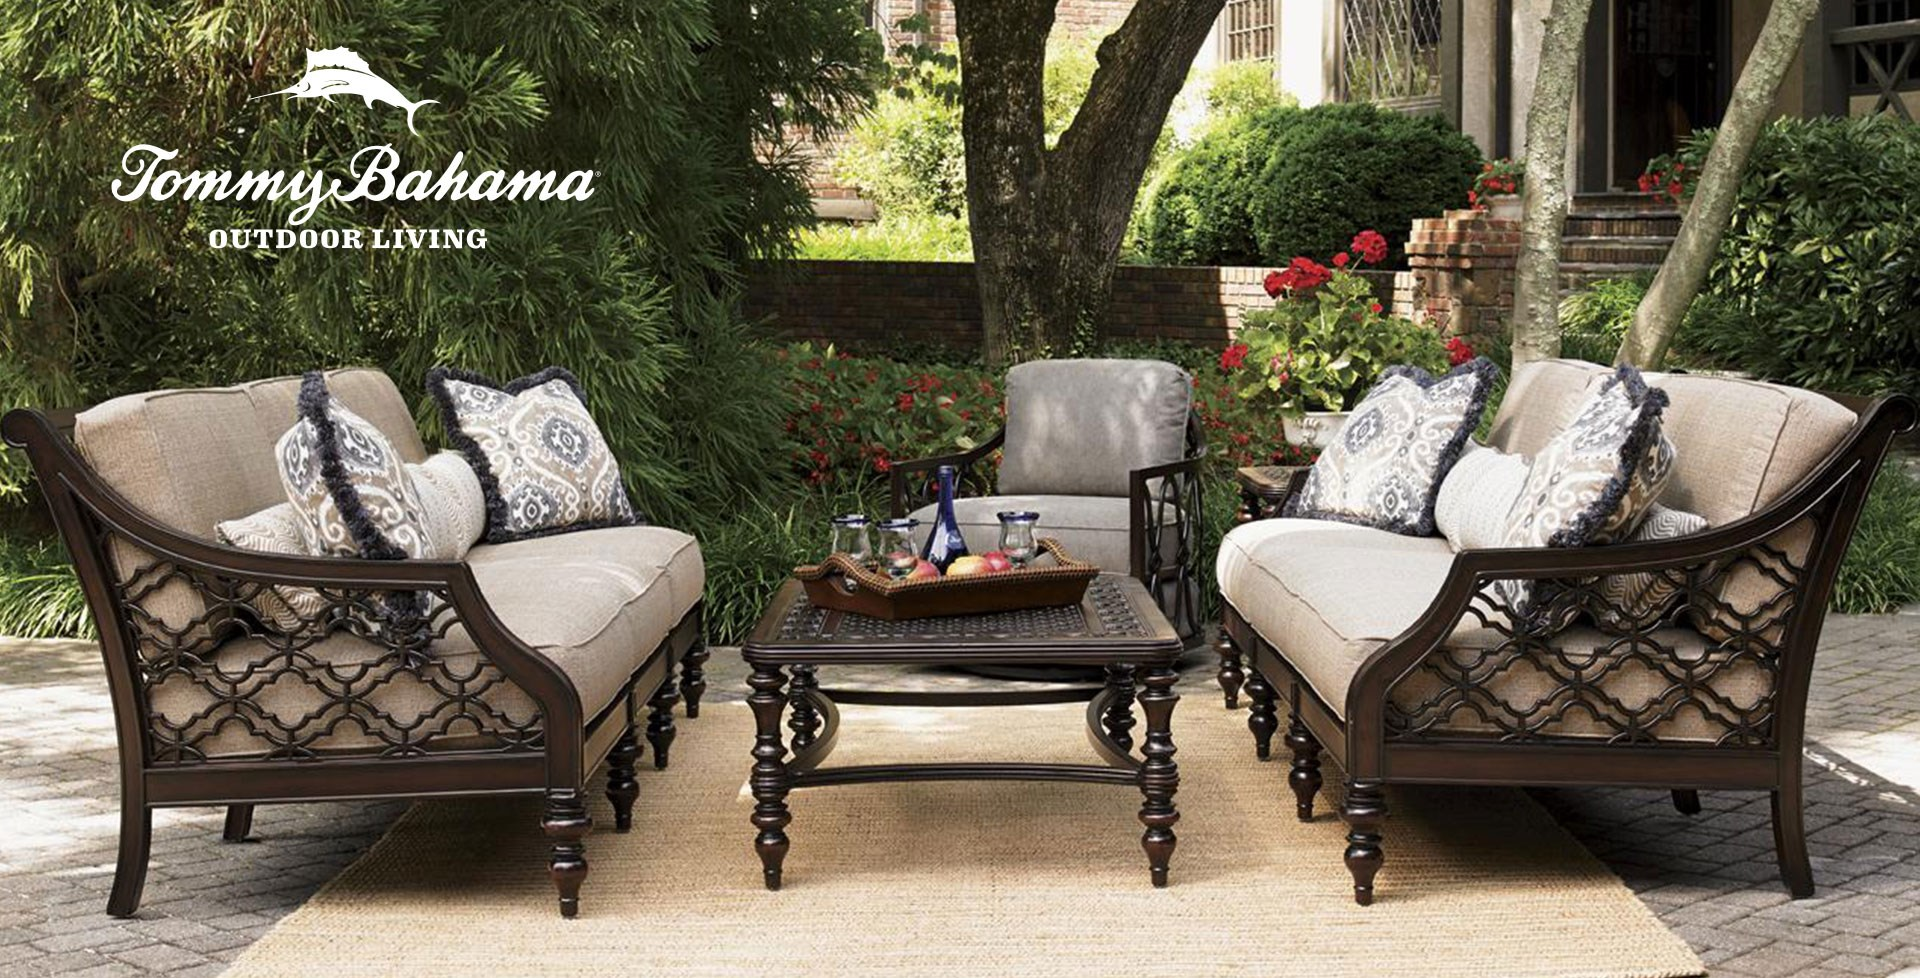 tommy bahama outdoor living at baer s